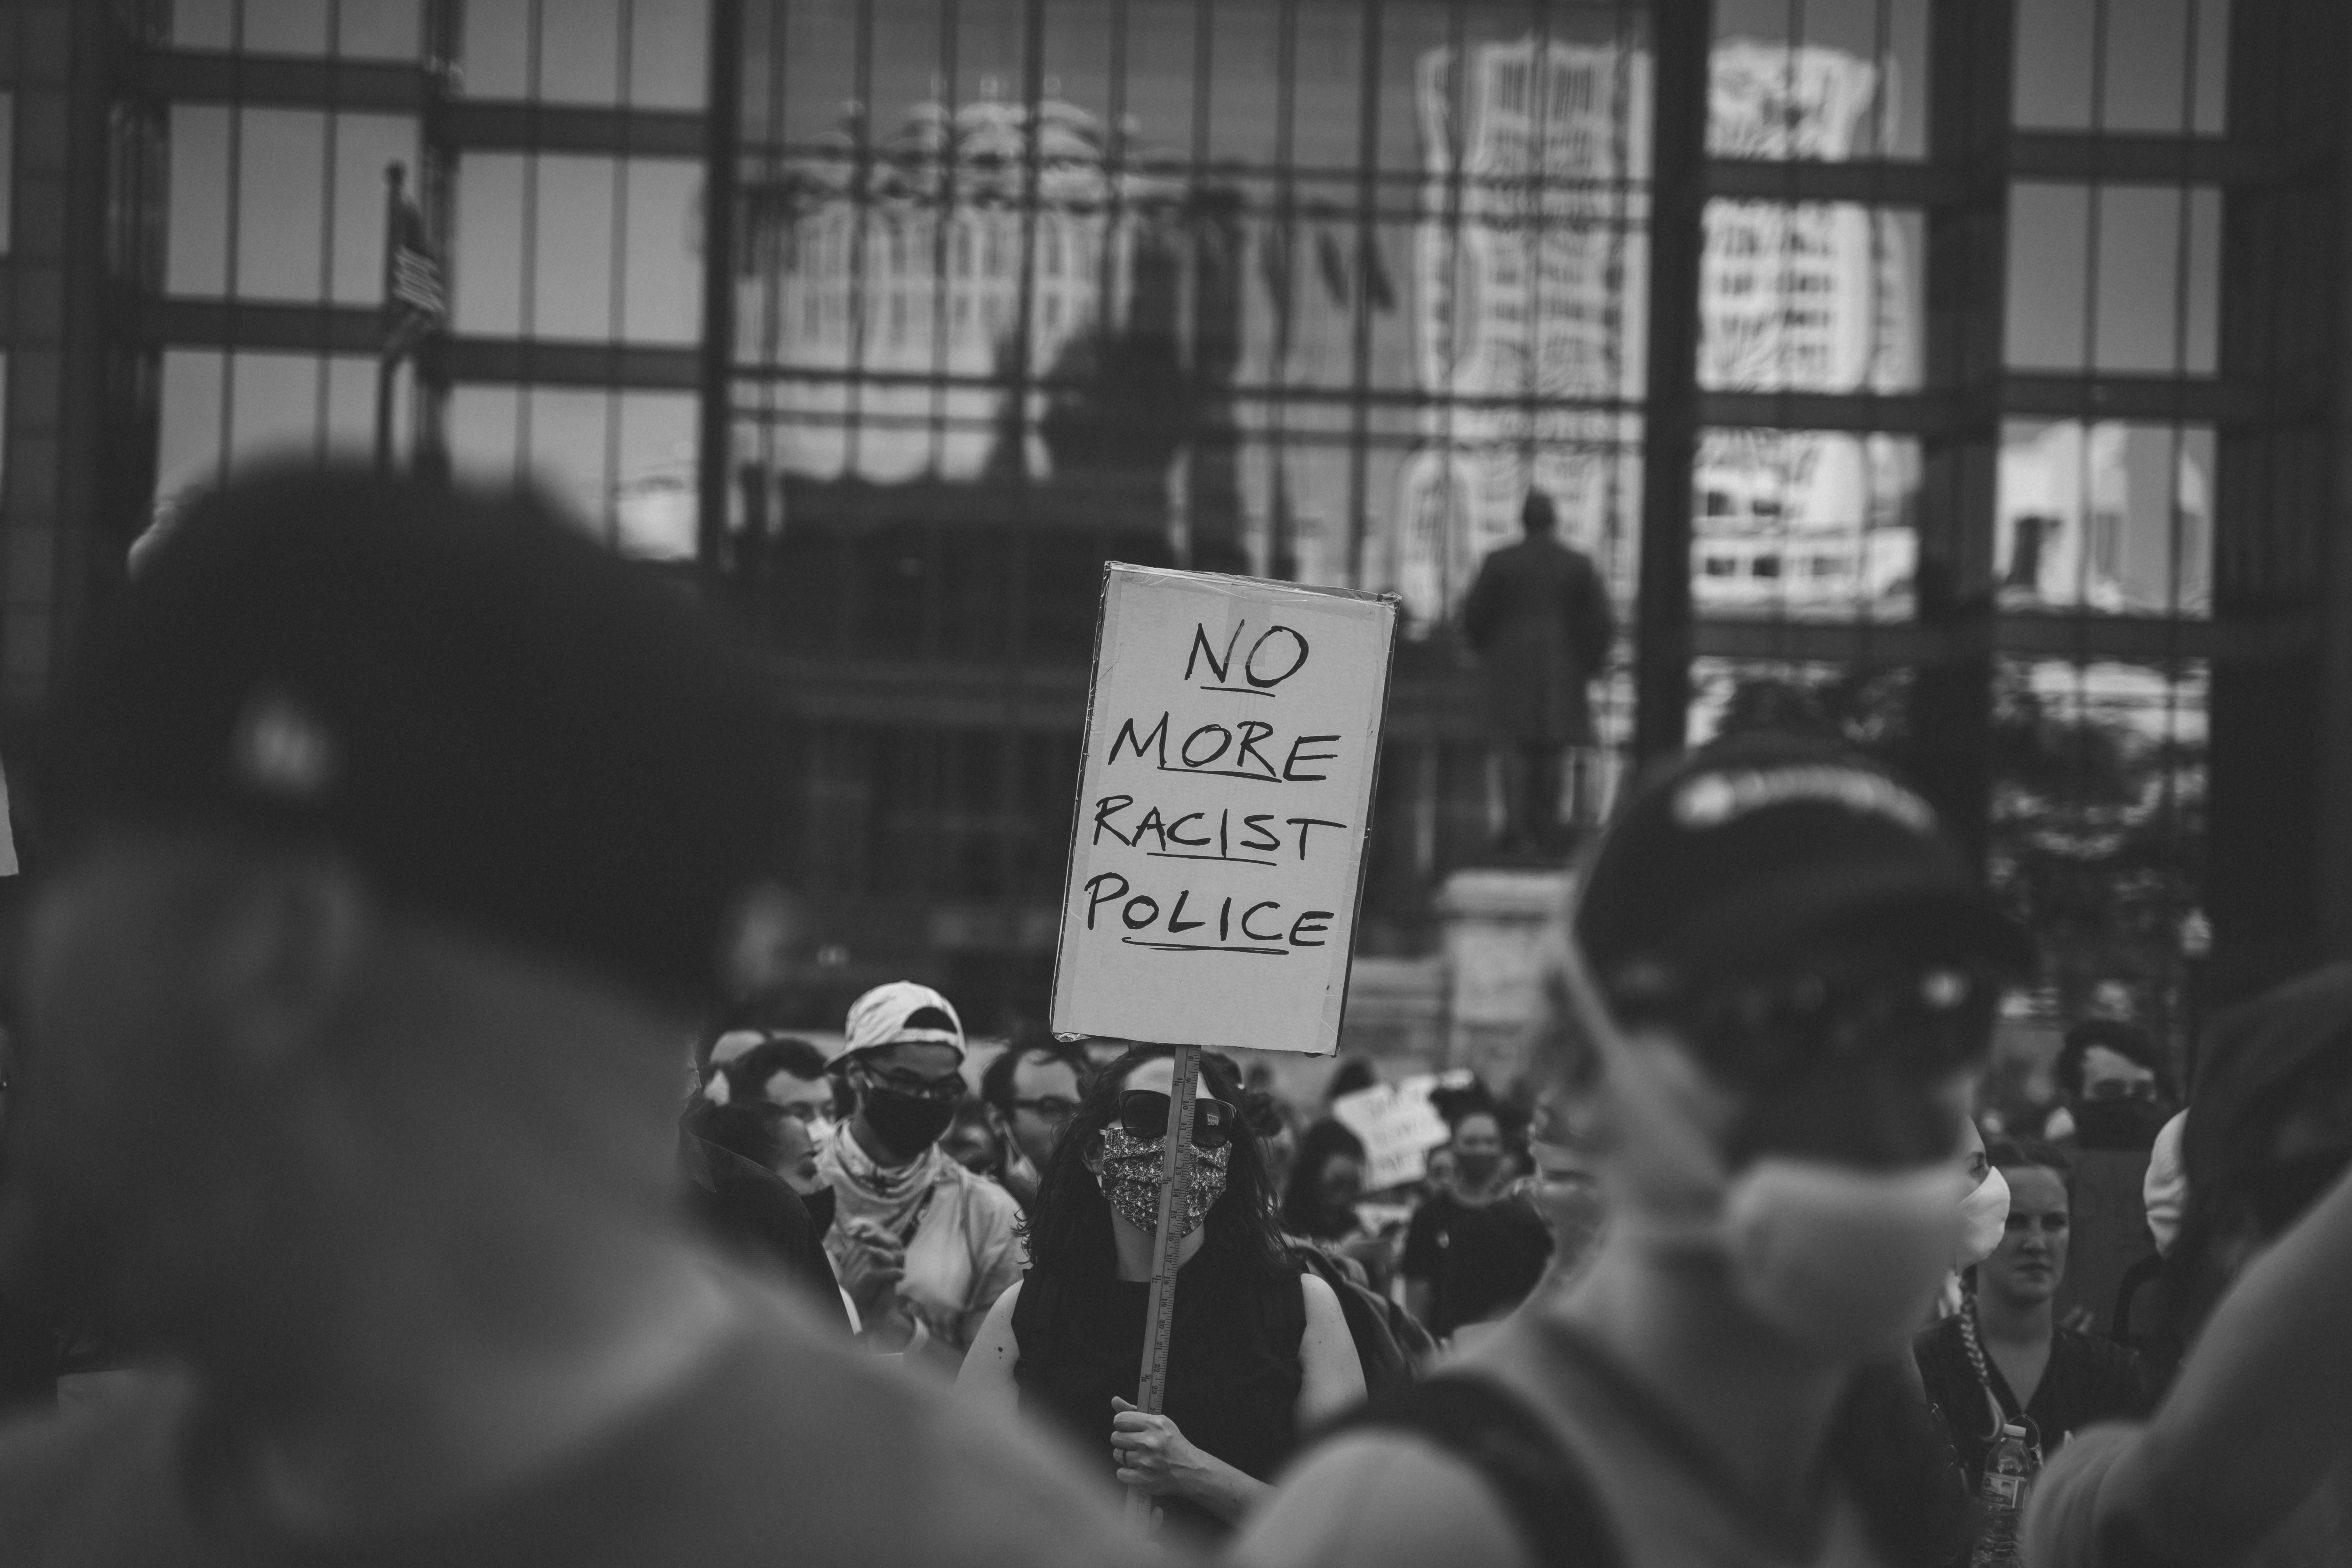 "A black and white photo. The image focuses on the middle ground featuring a protester carrying a sign that says ""no more racist police."" The foreground shows more protestors out of focus. The background shows a building with windows that reflect images of many buildings in downtown Columbus."